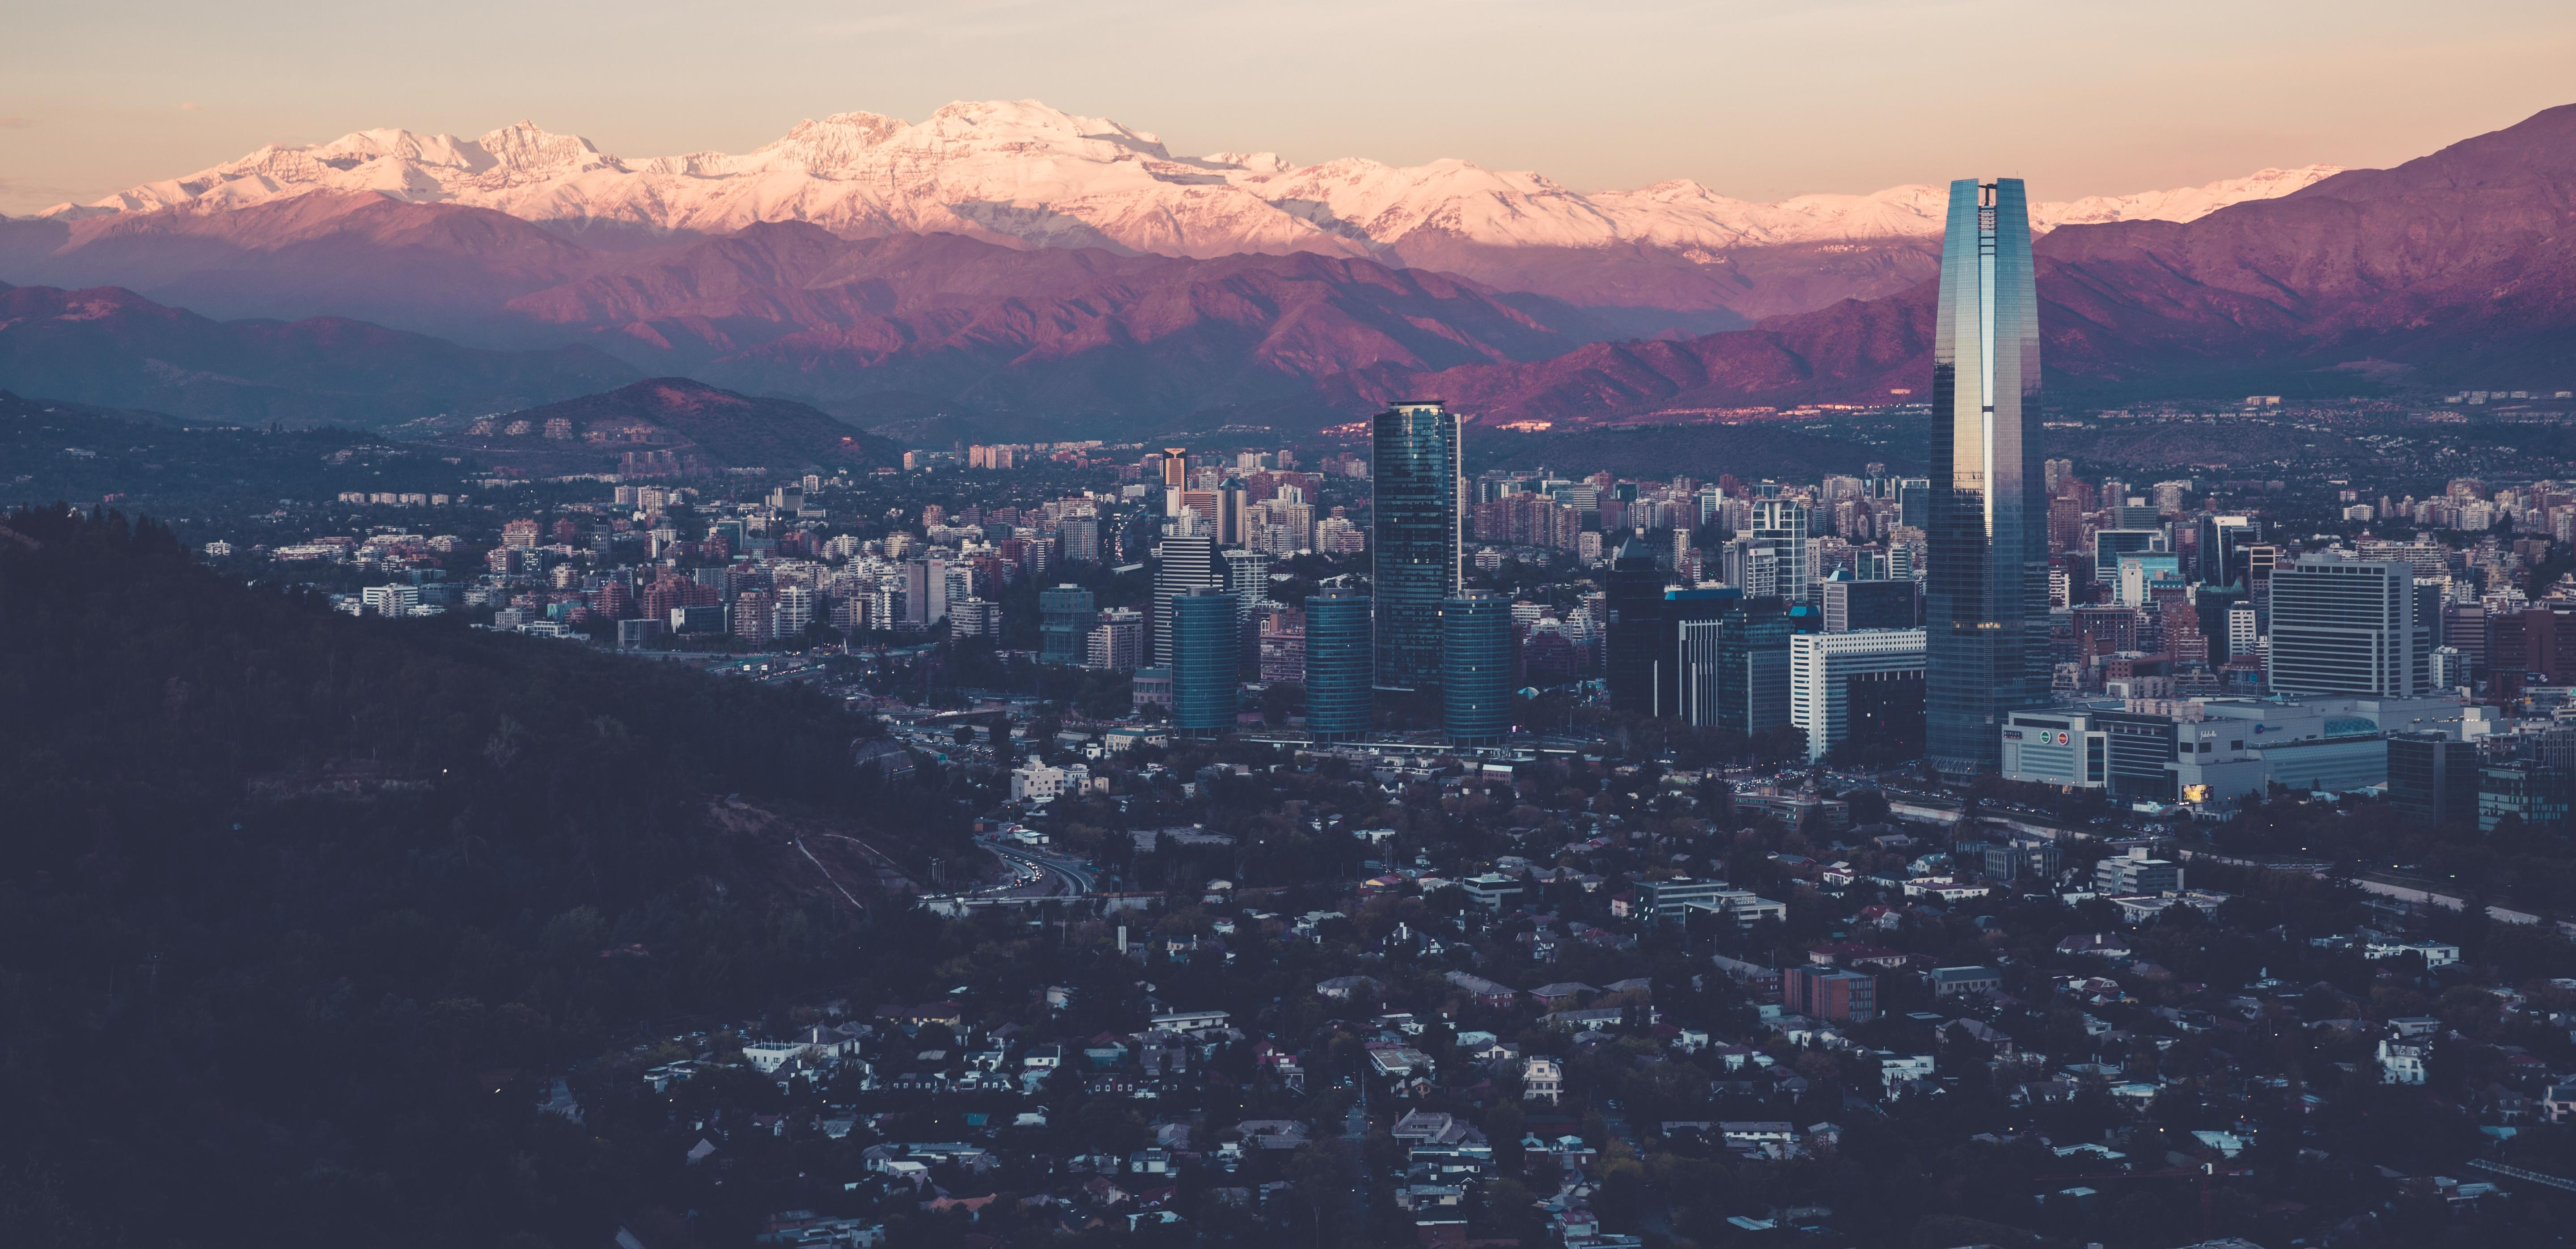 Aerial view of Santiago, Chile